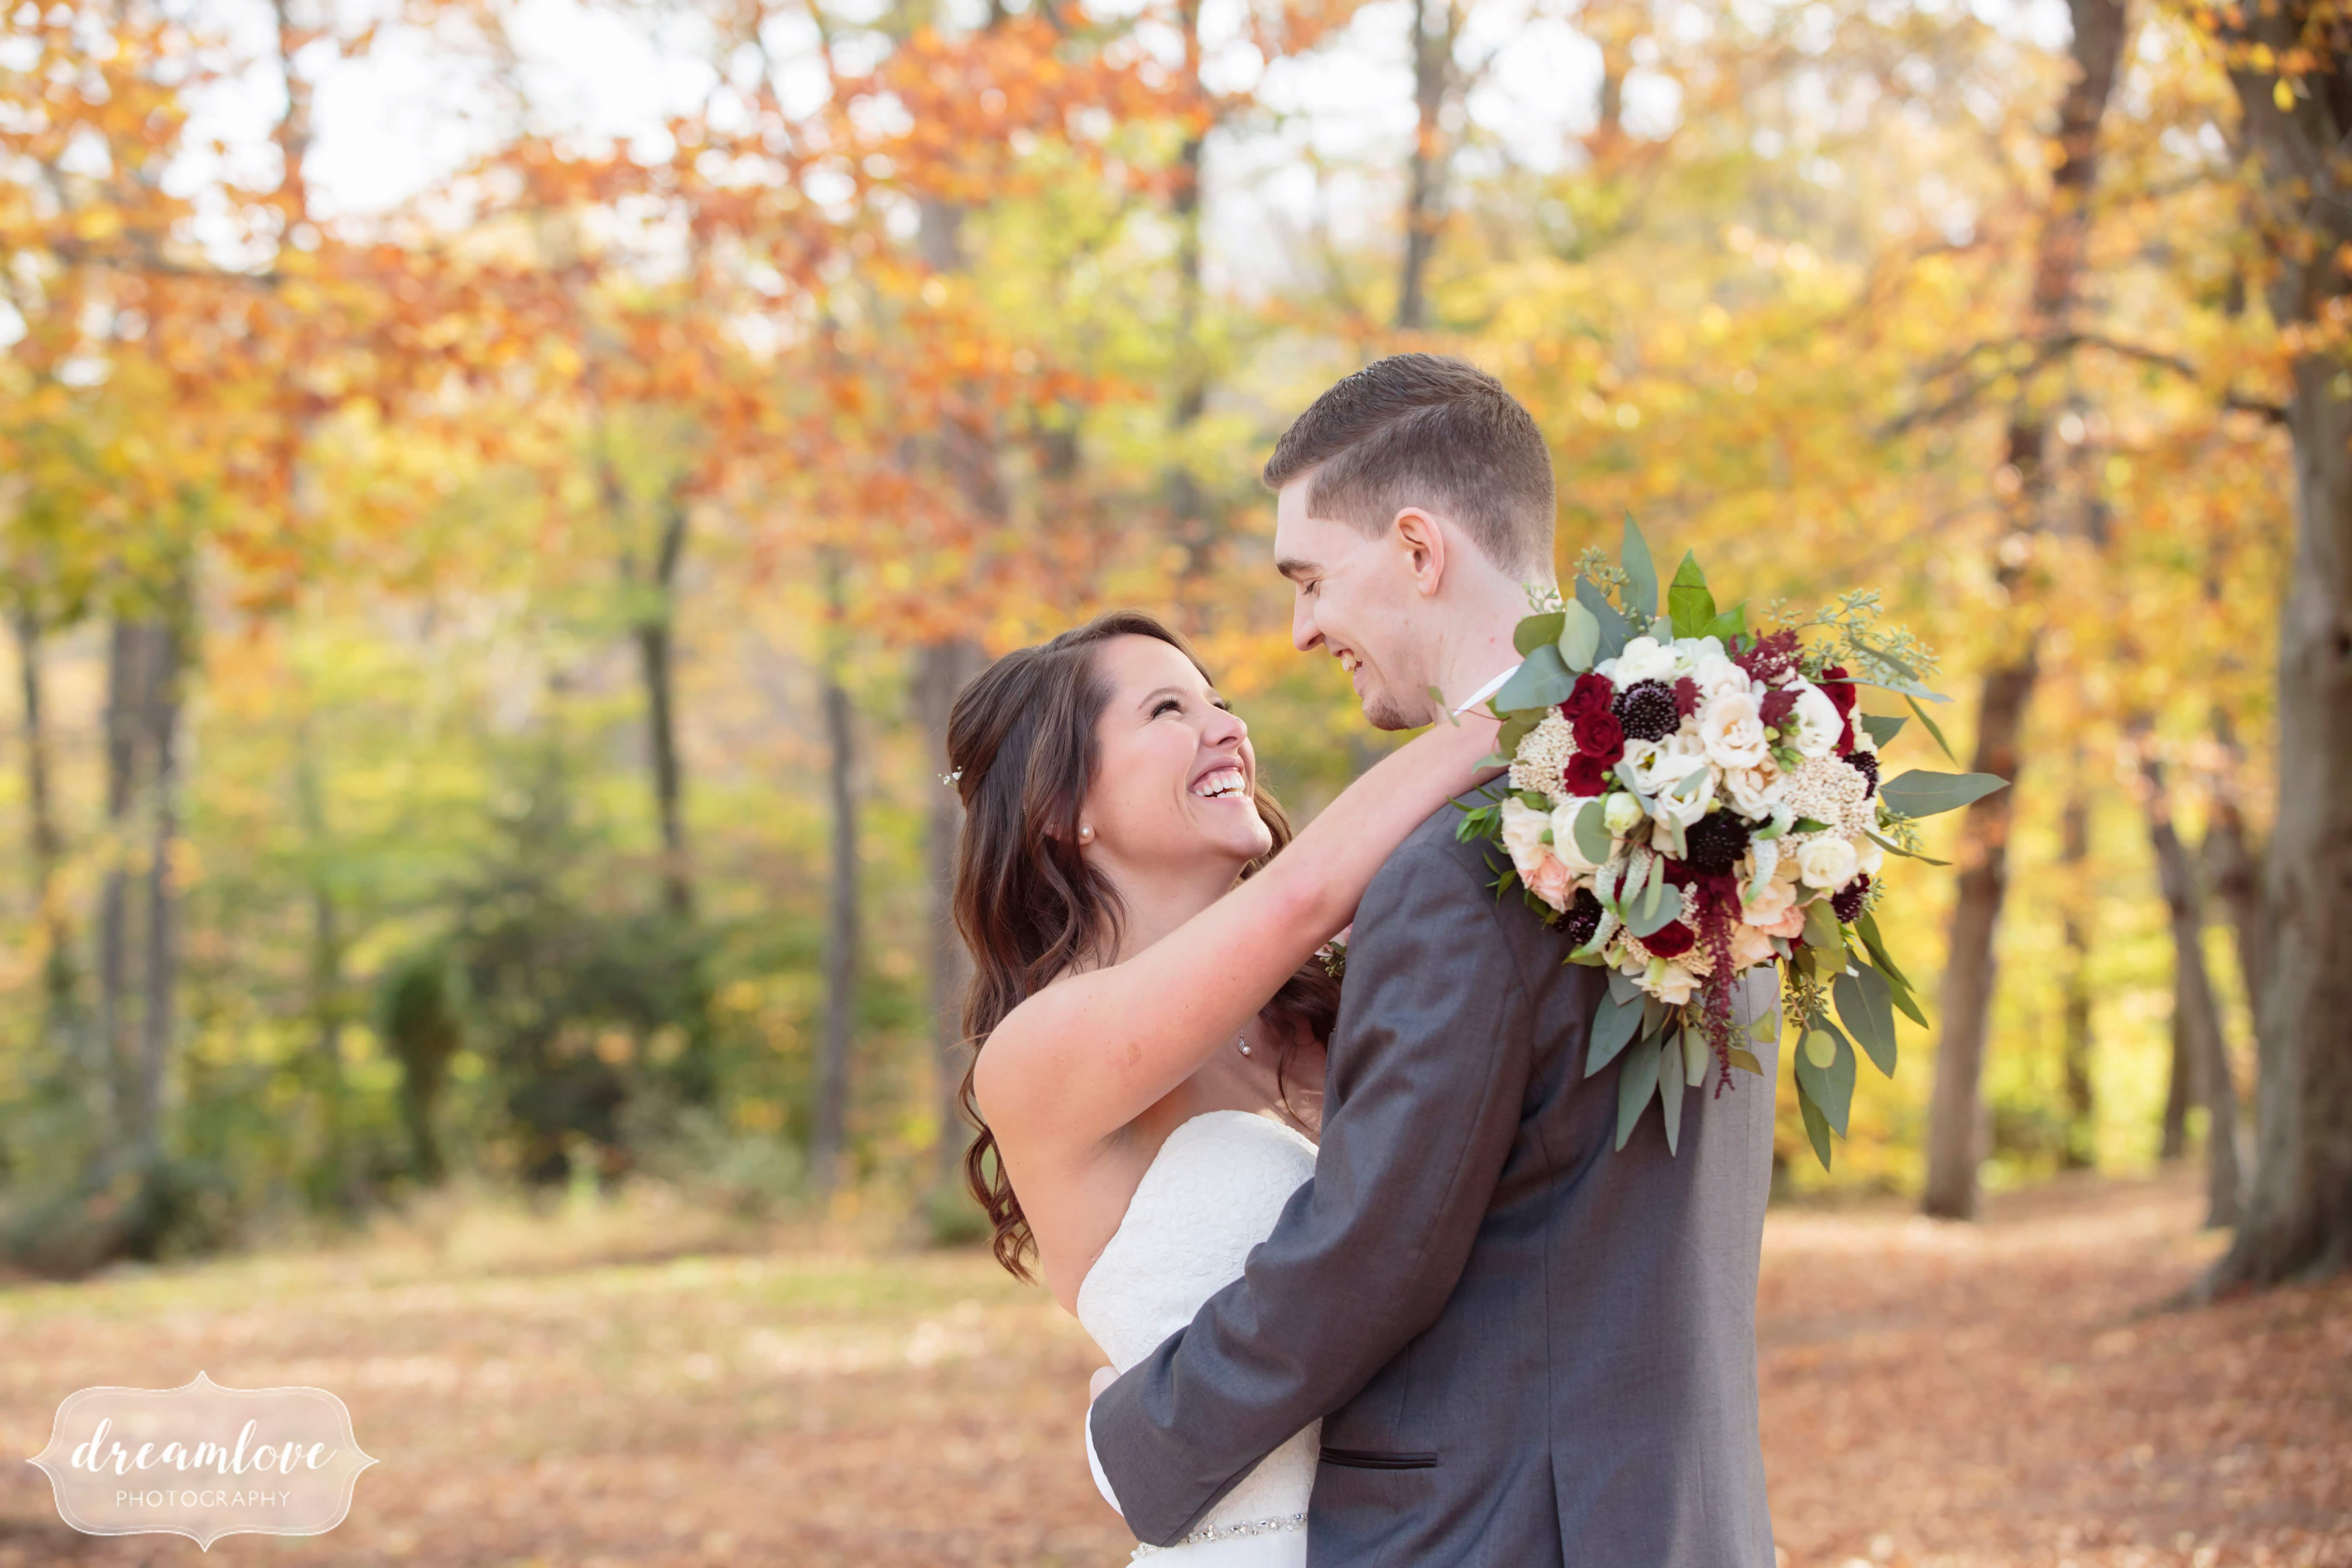 Romantic and ethereal wedding photography of the bride and groom in the woods for this fall wedding in CT.